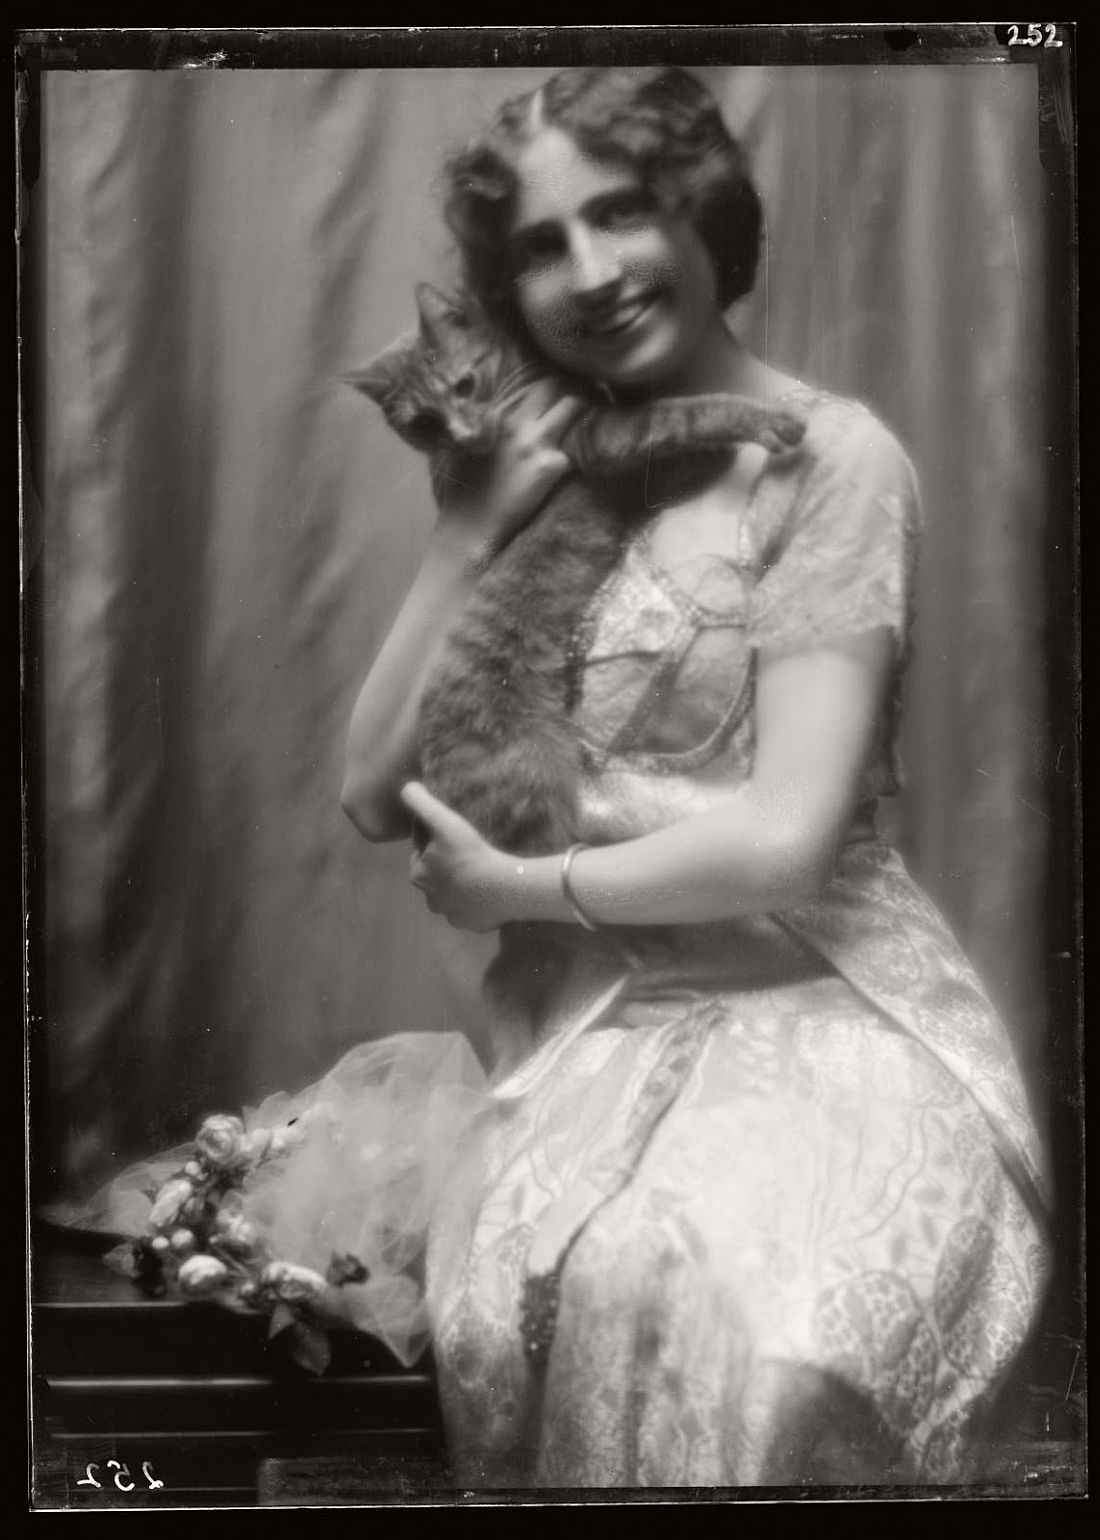 arnold-genthe-1910s-vintage-studio-portraits-of-girls-with-cat-04